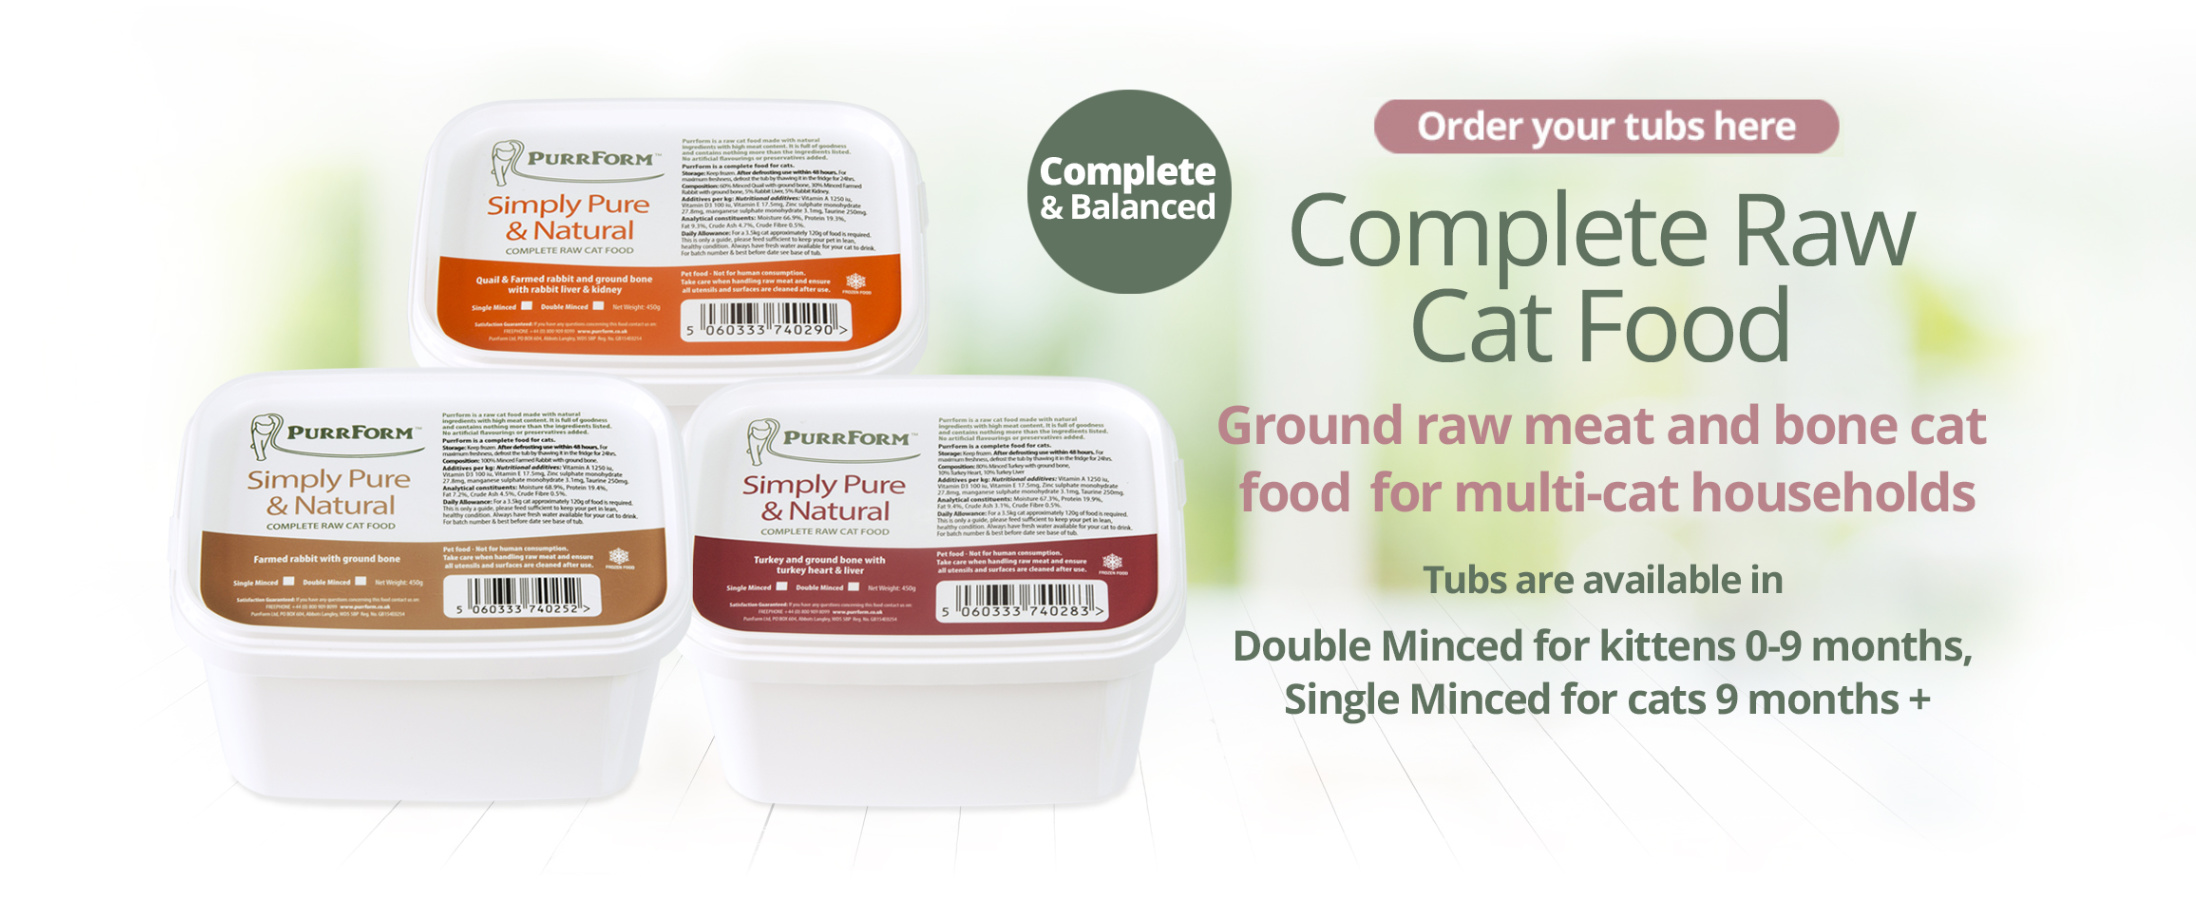 raw food dating uk Labeling compliance policy guide on poultry food product dating   raw product only,  labeling compliance policy guide on poultry food product dating.